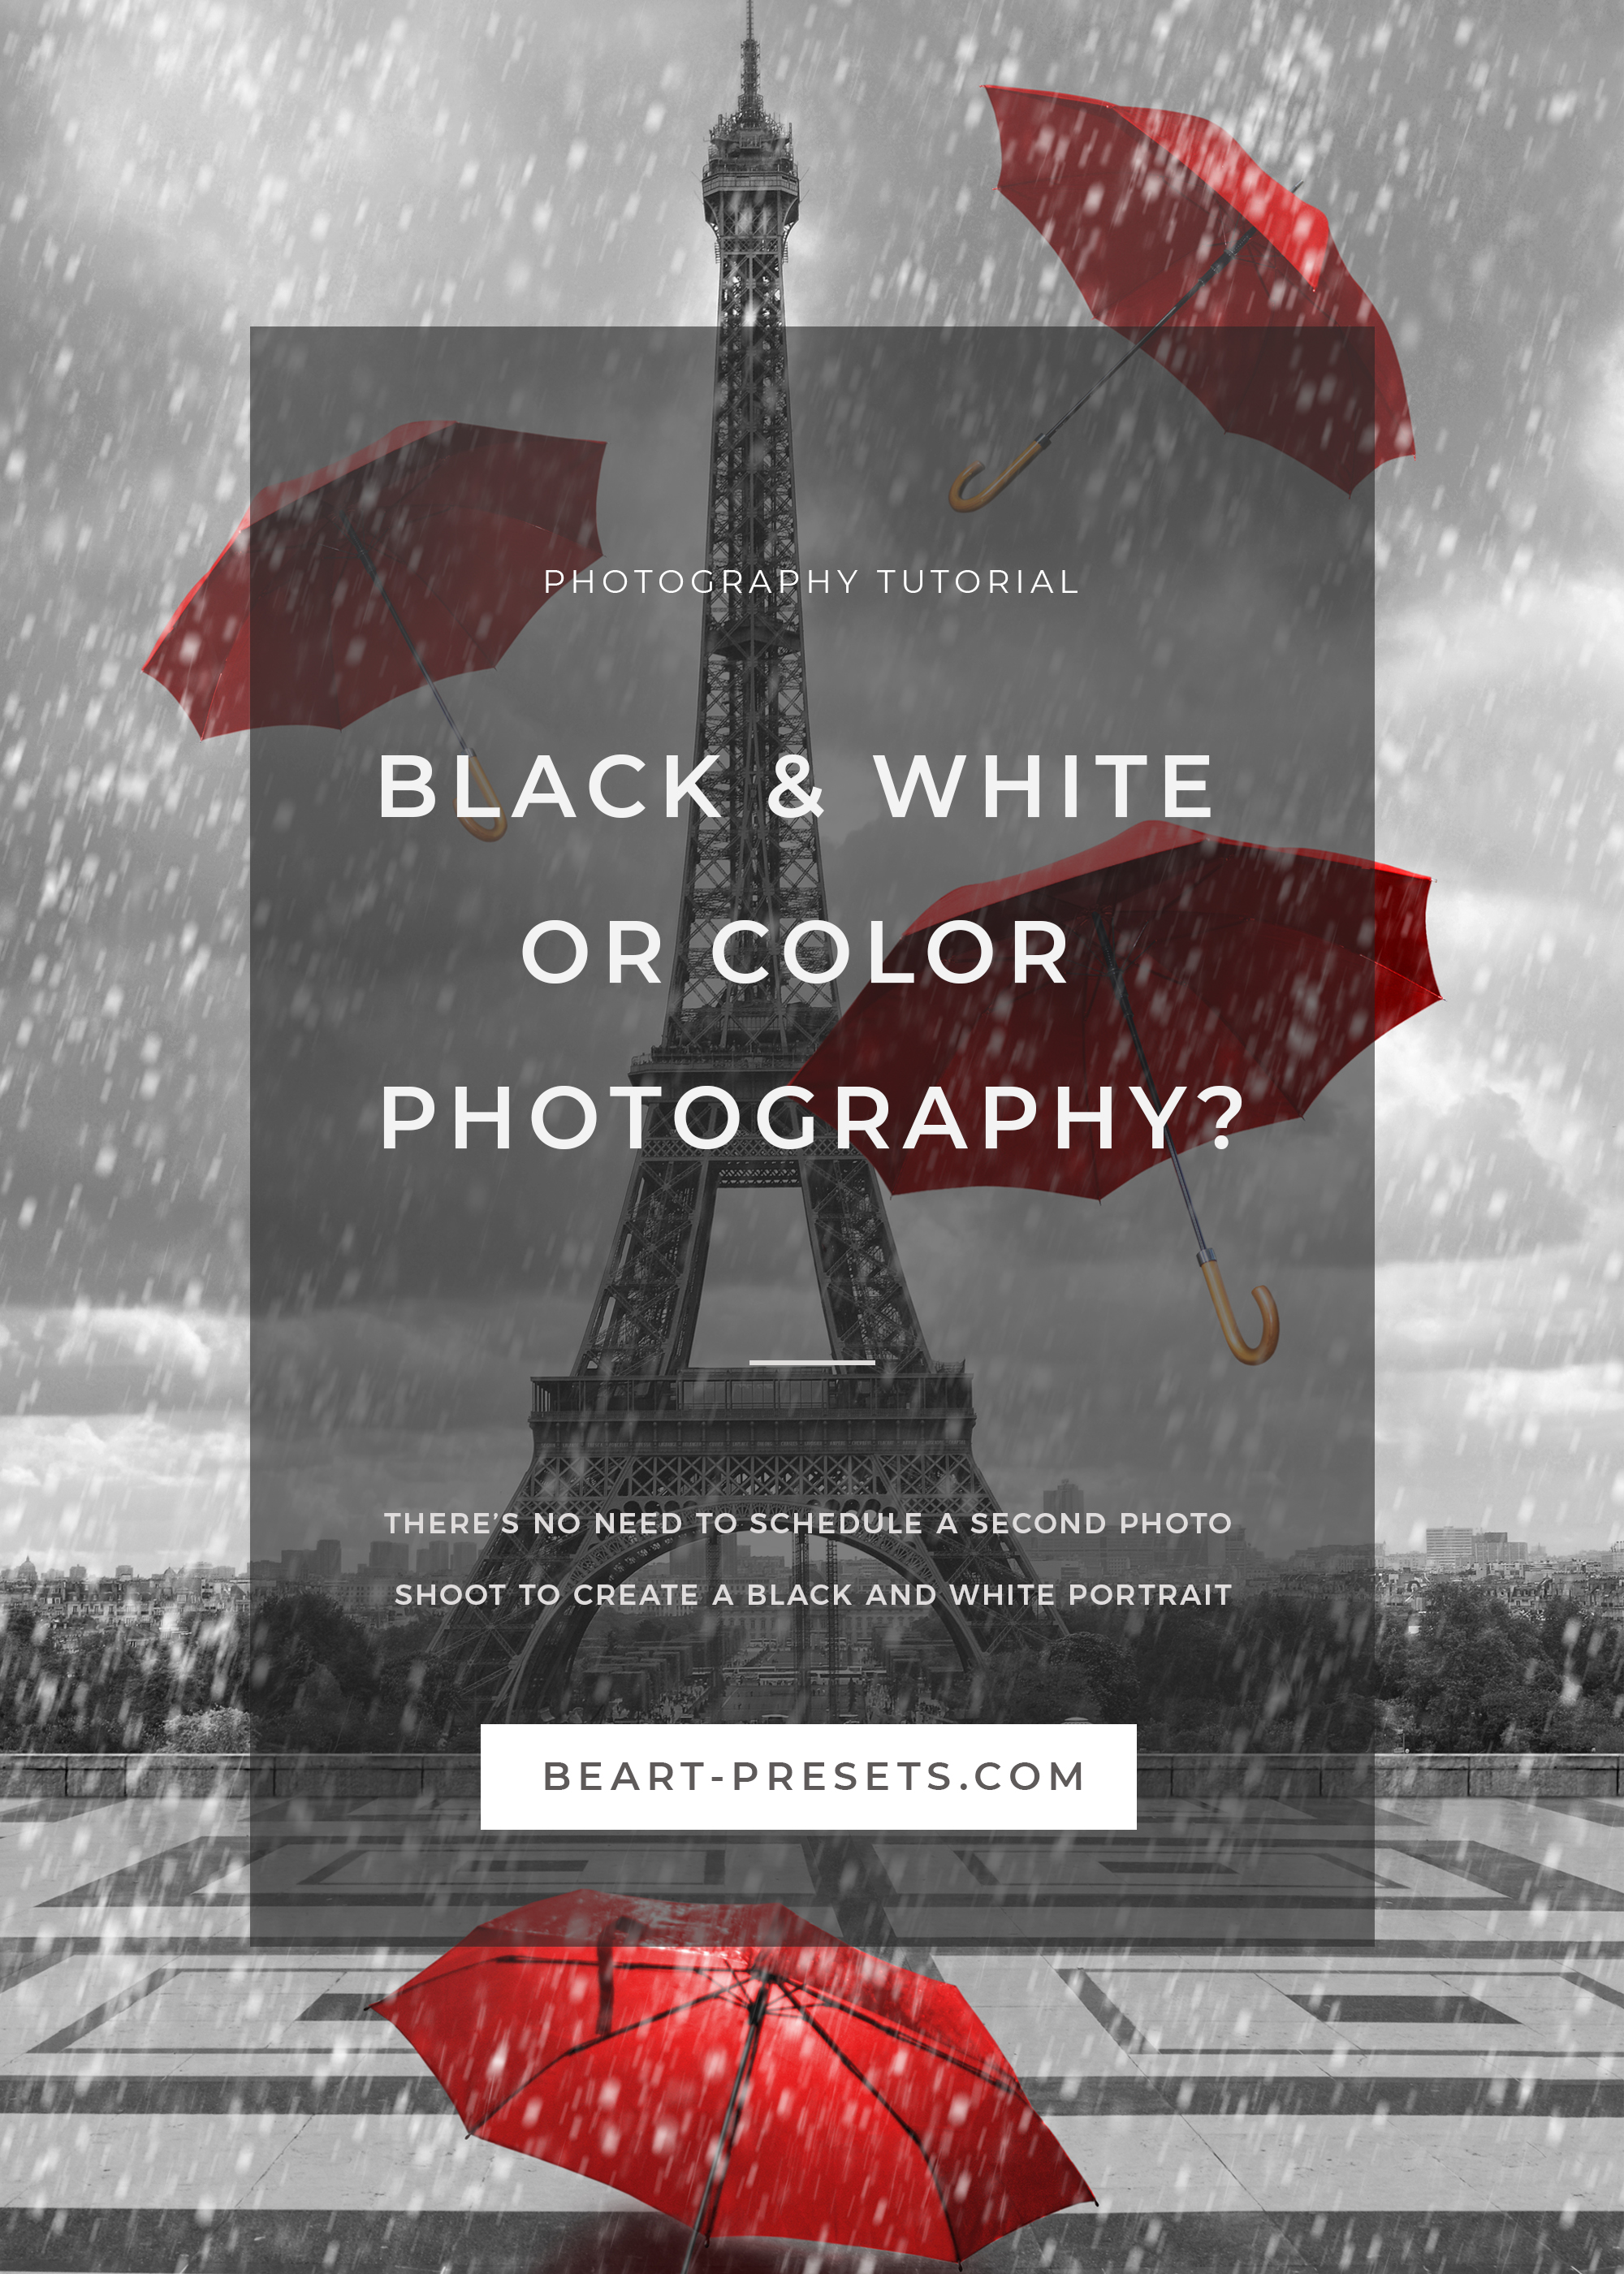 black and white or color photography